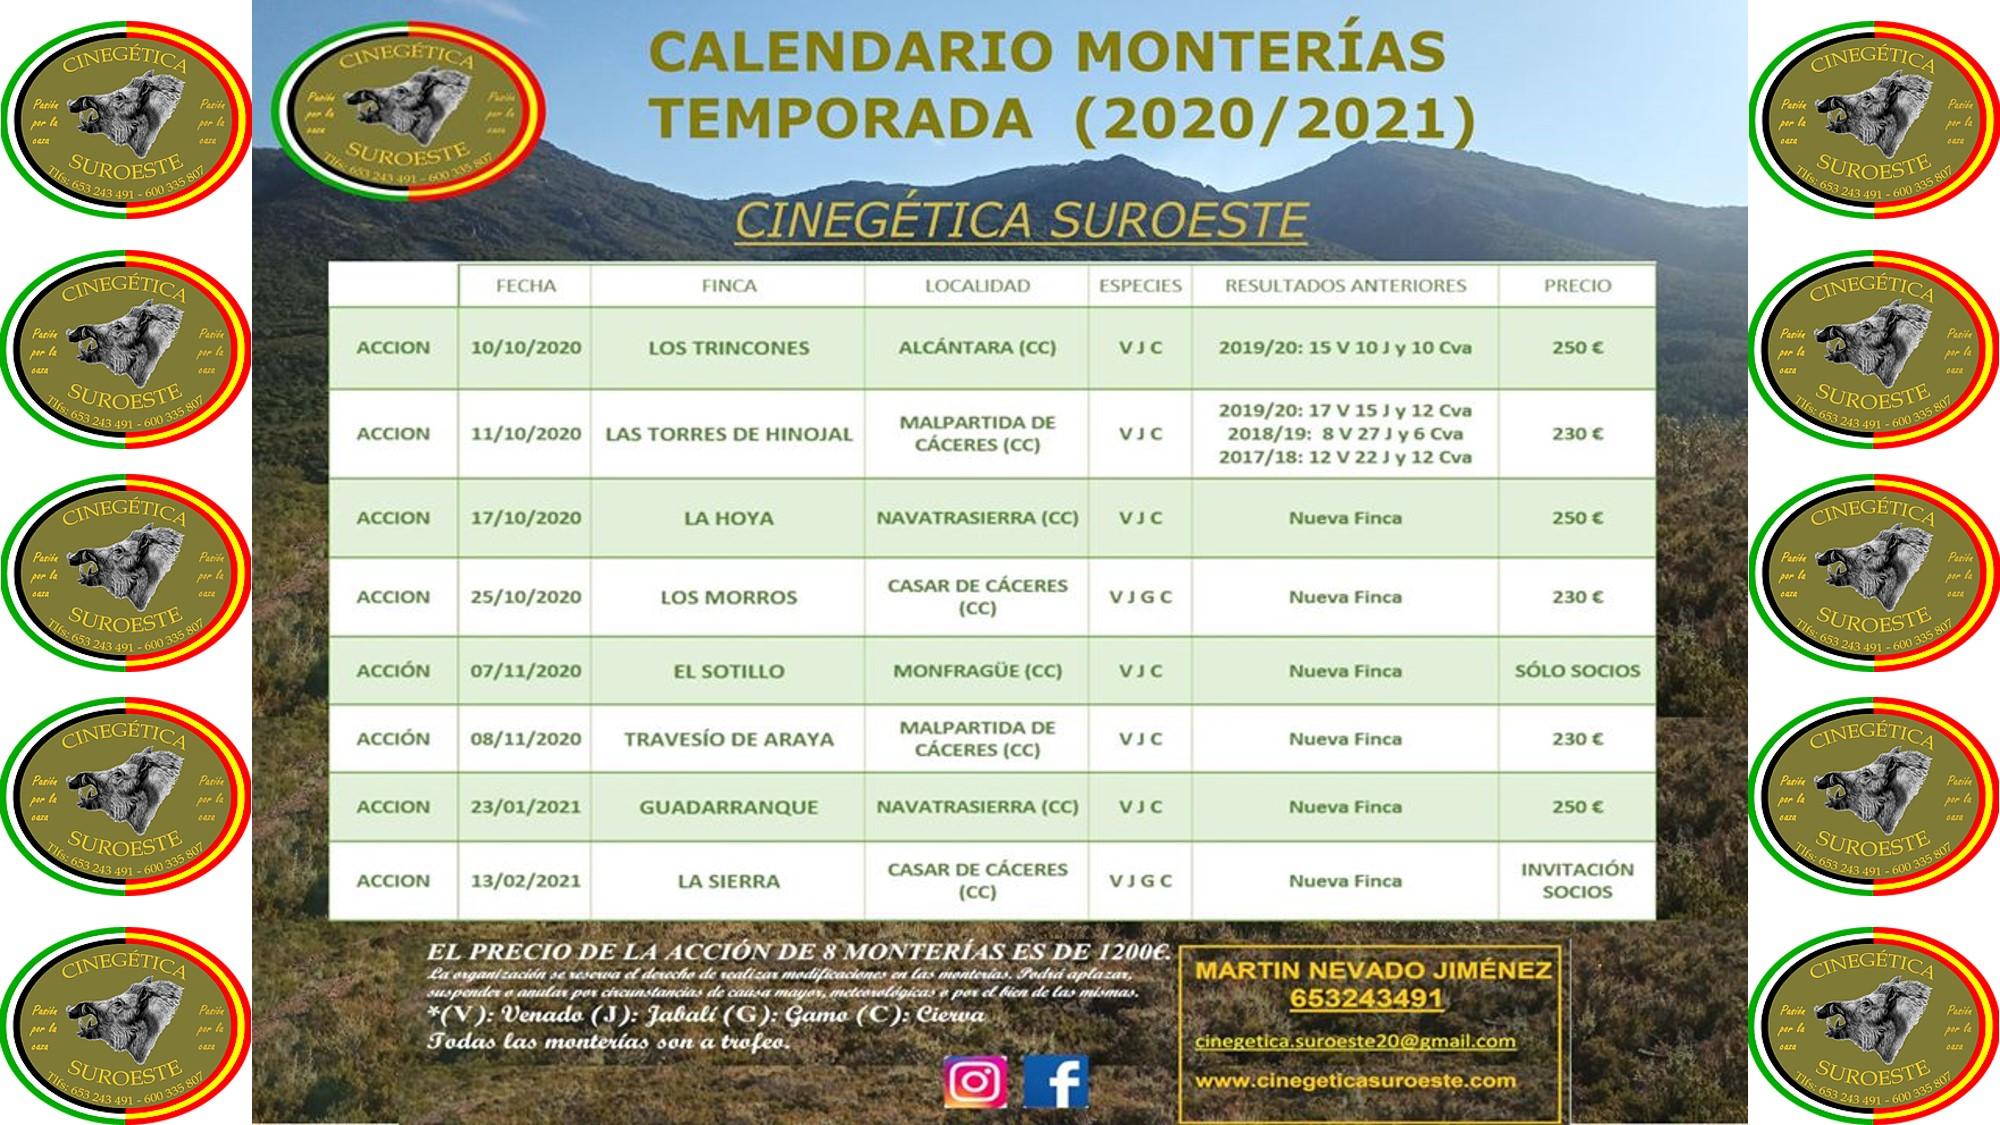 Cinegética Suroeste Calendario Audiovisual 2020/21